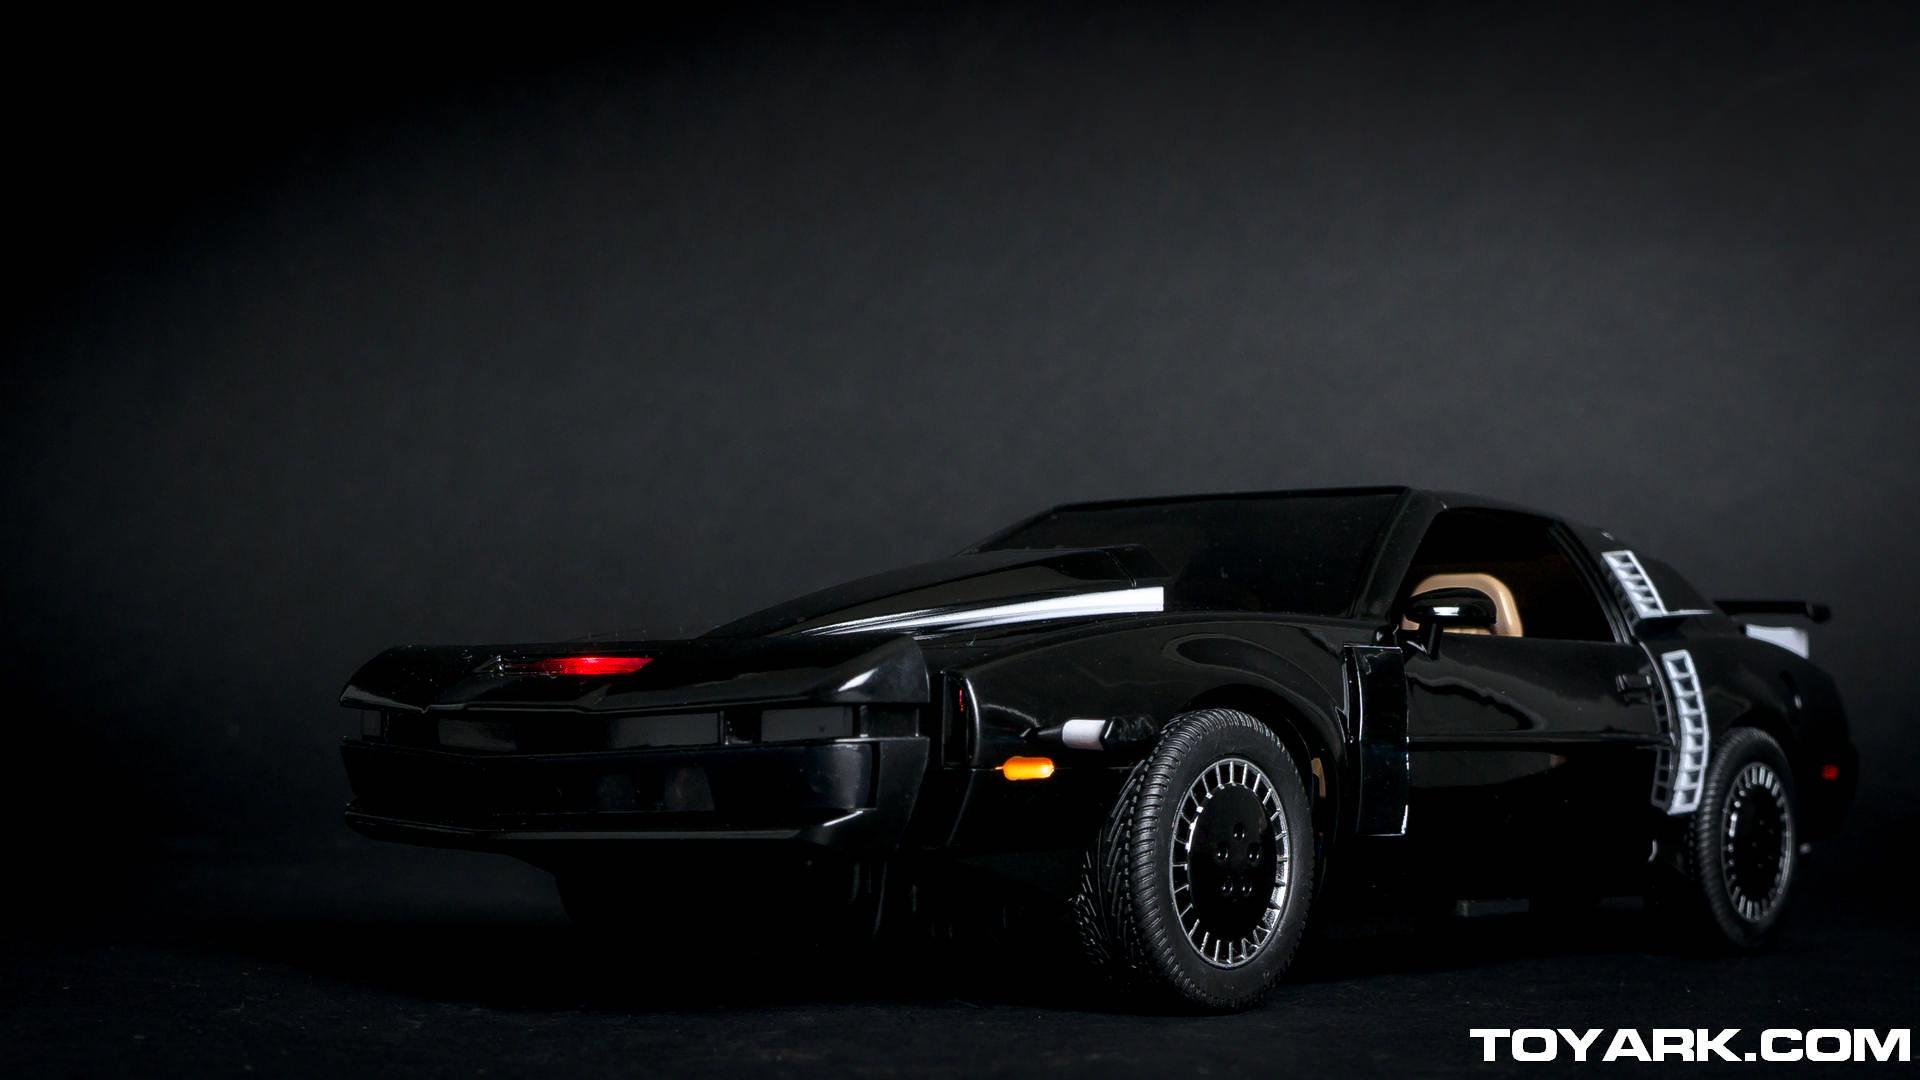 Knight Rider Kitt Wallpapers 1920x1080